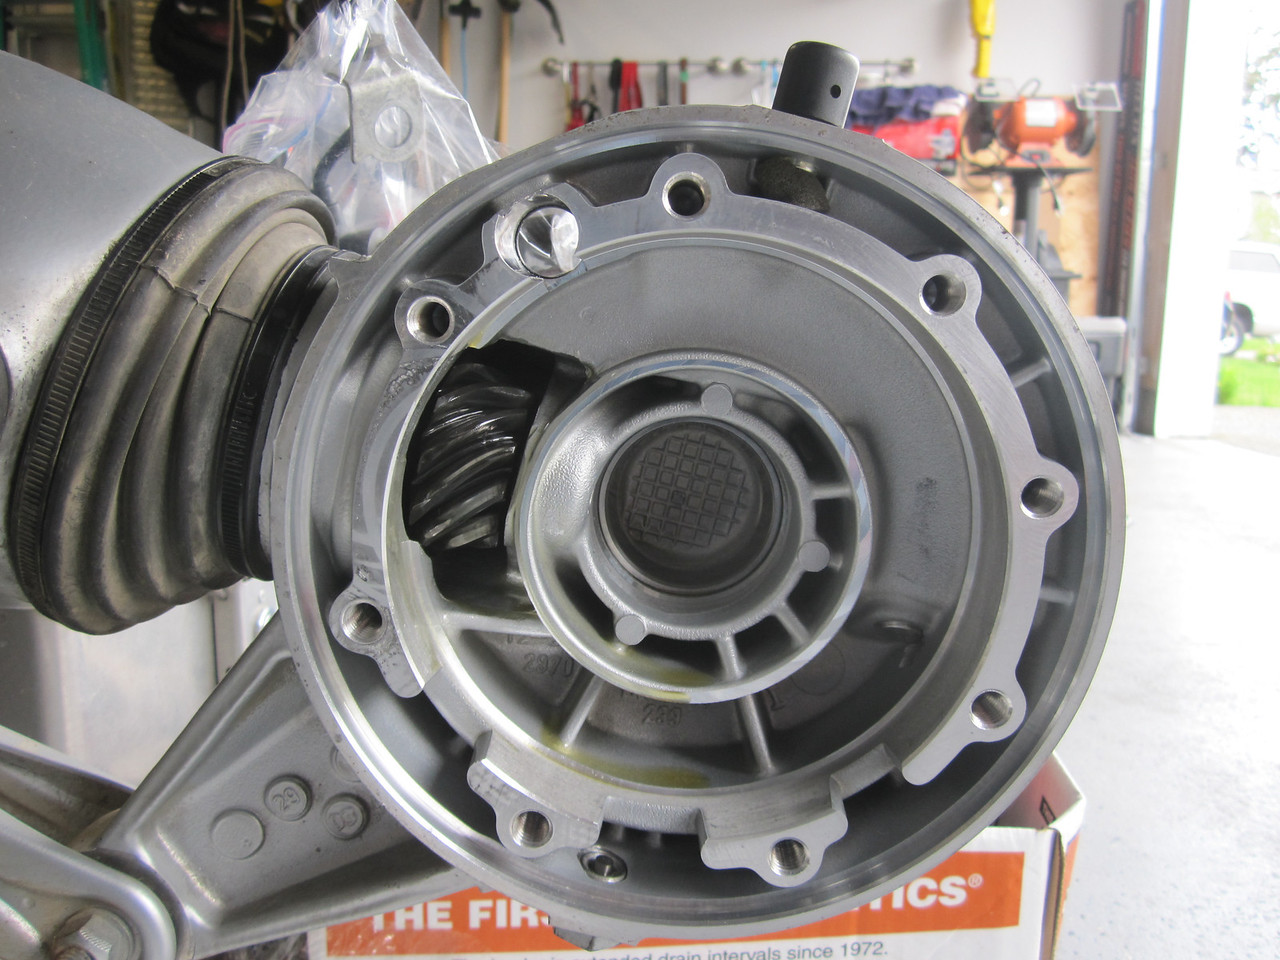 Put some gear lube on all bearing surfaces and gears.